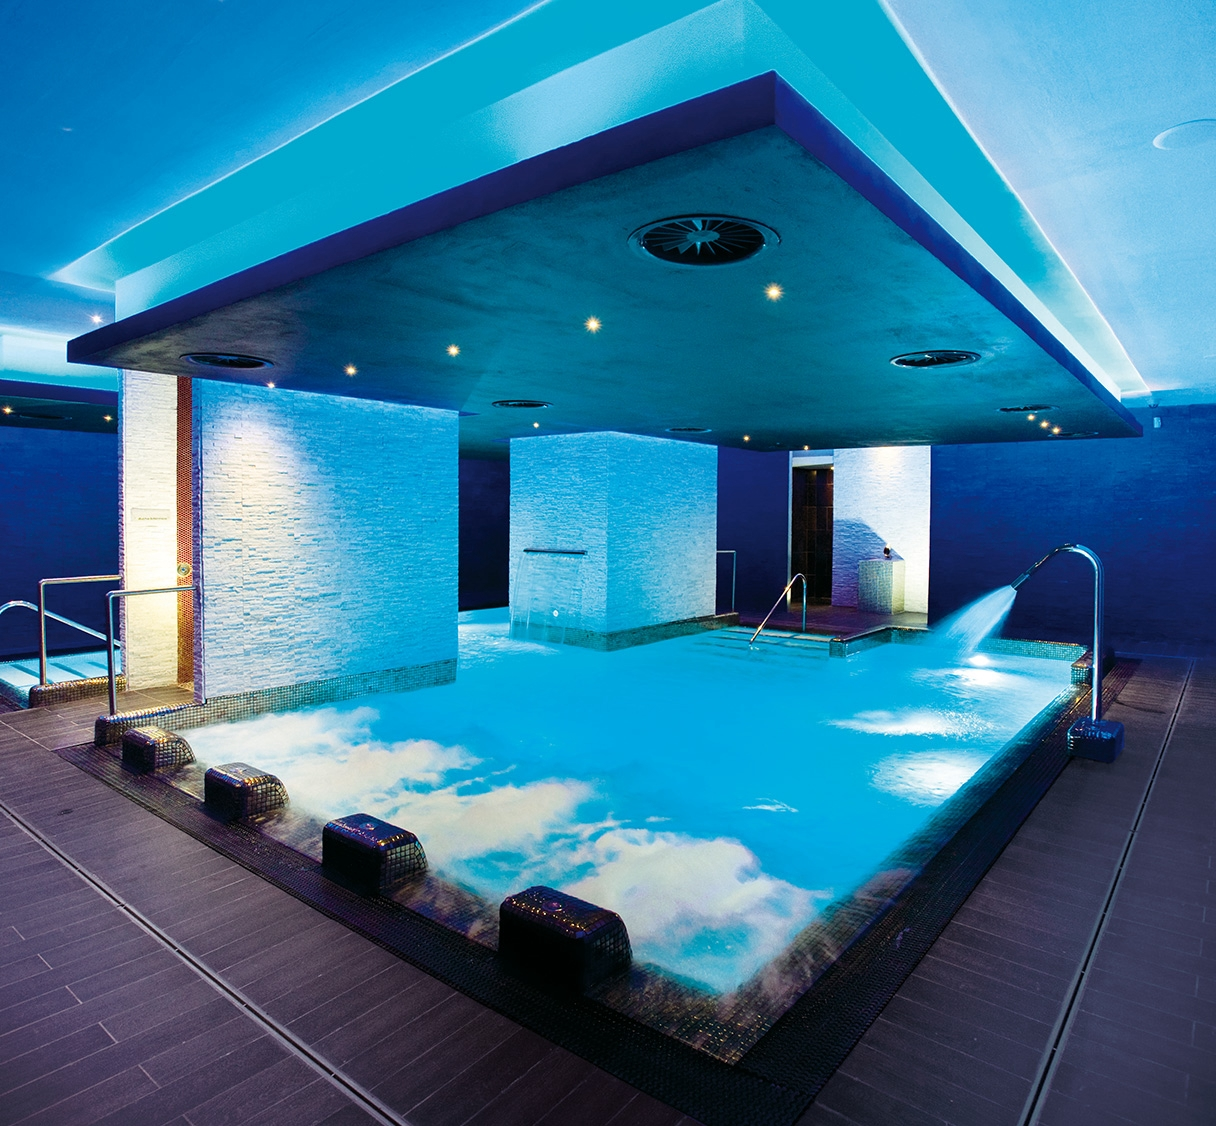 Spas en alcala de henares latest spa with spas en alcala de henares perfect free spa del - Spas en alcala de henares ...